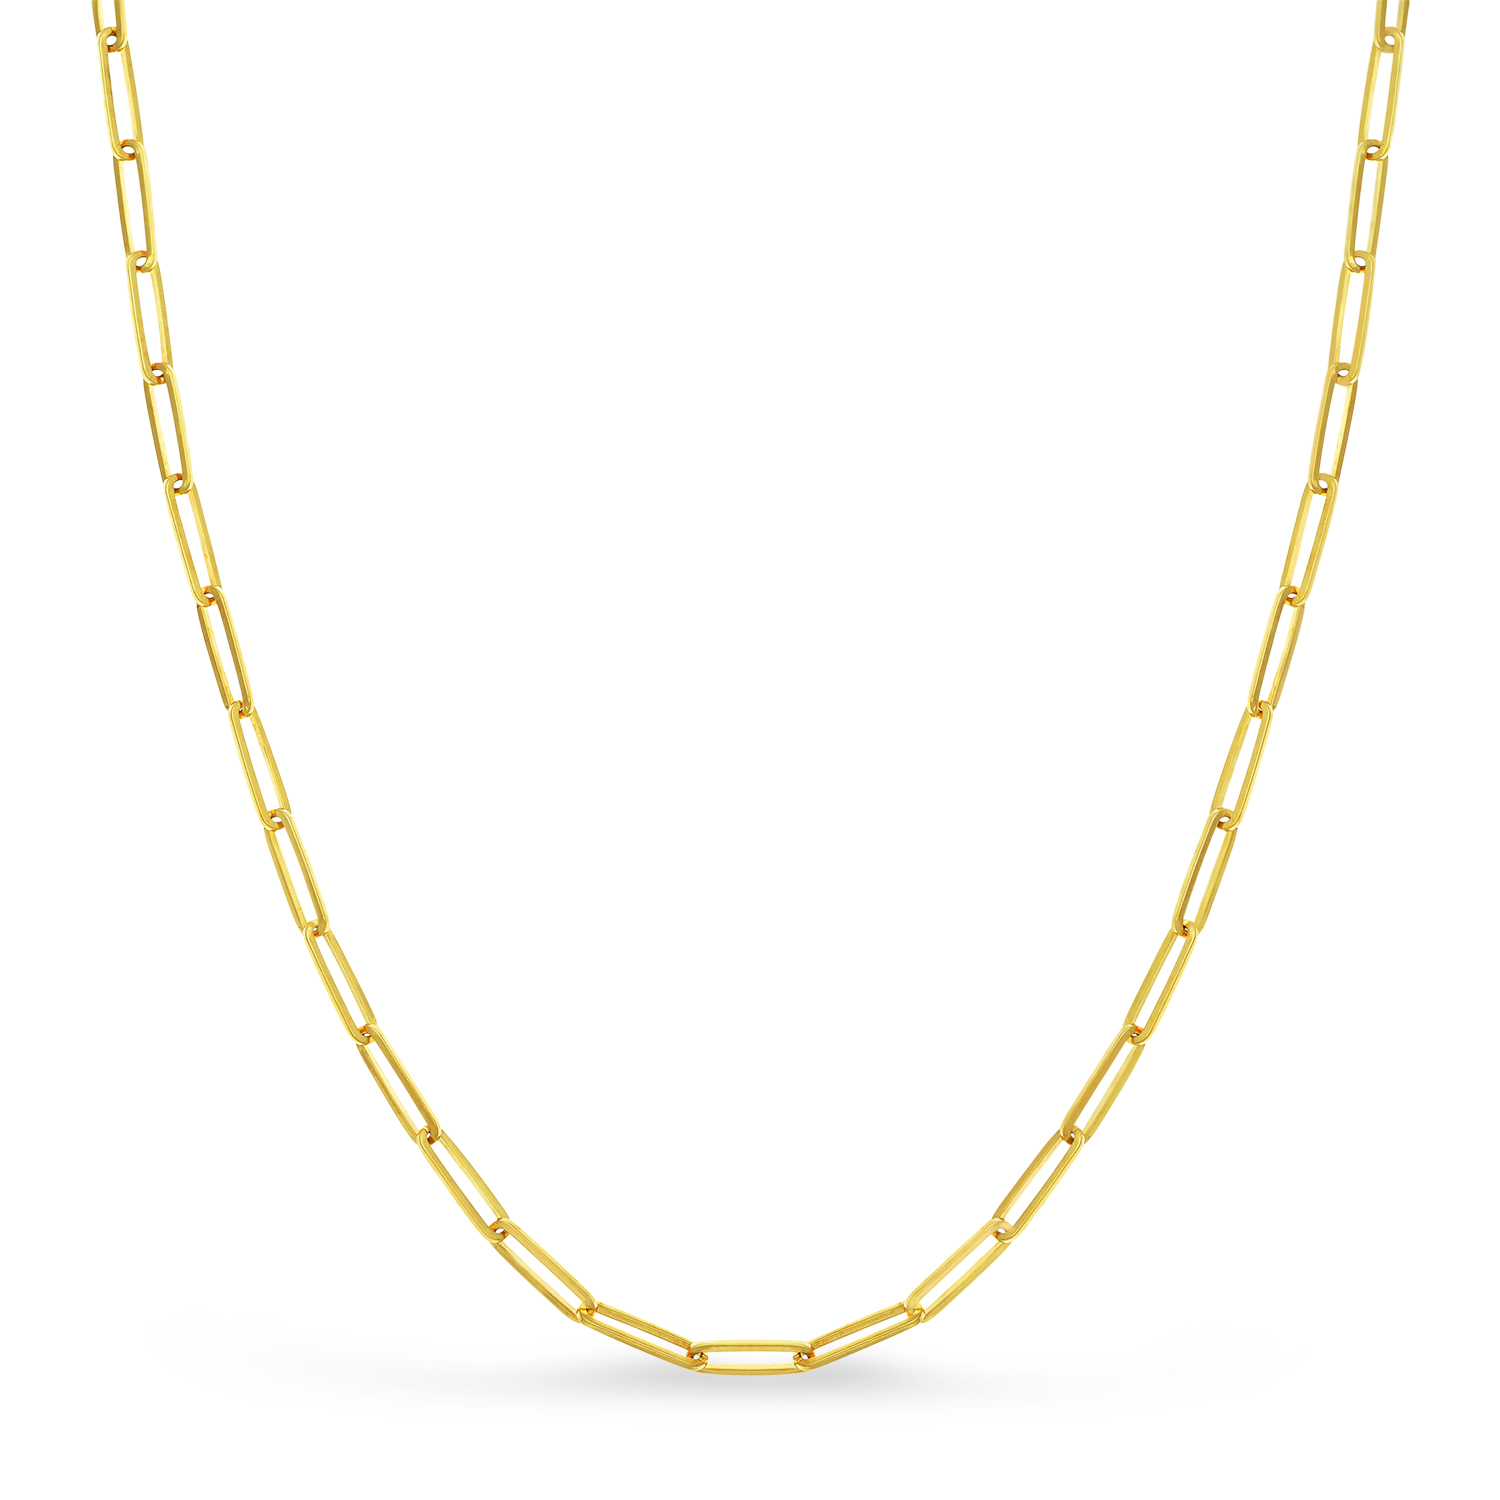 Handmade Elongated Paperclip Link Chain Necklace 14k Yellow Gold